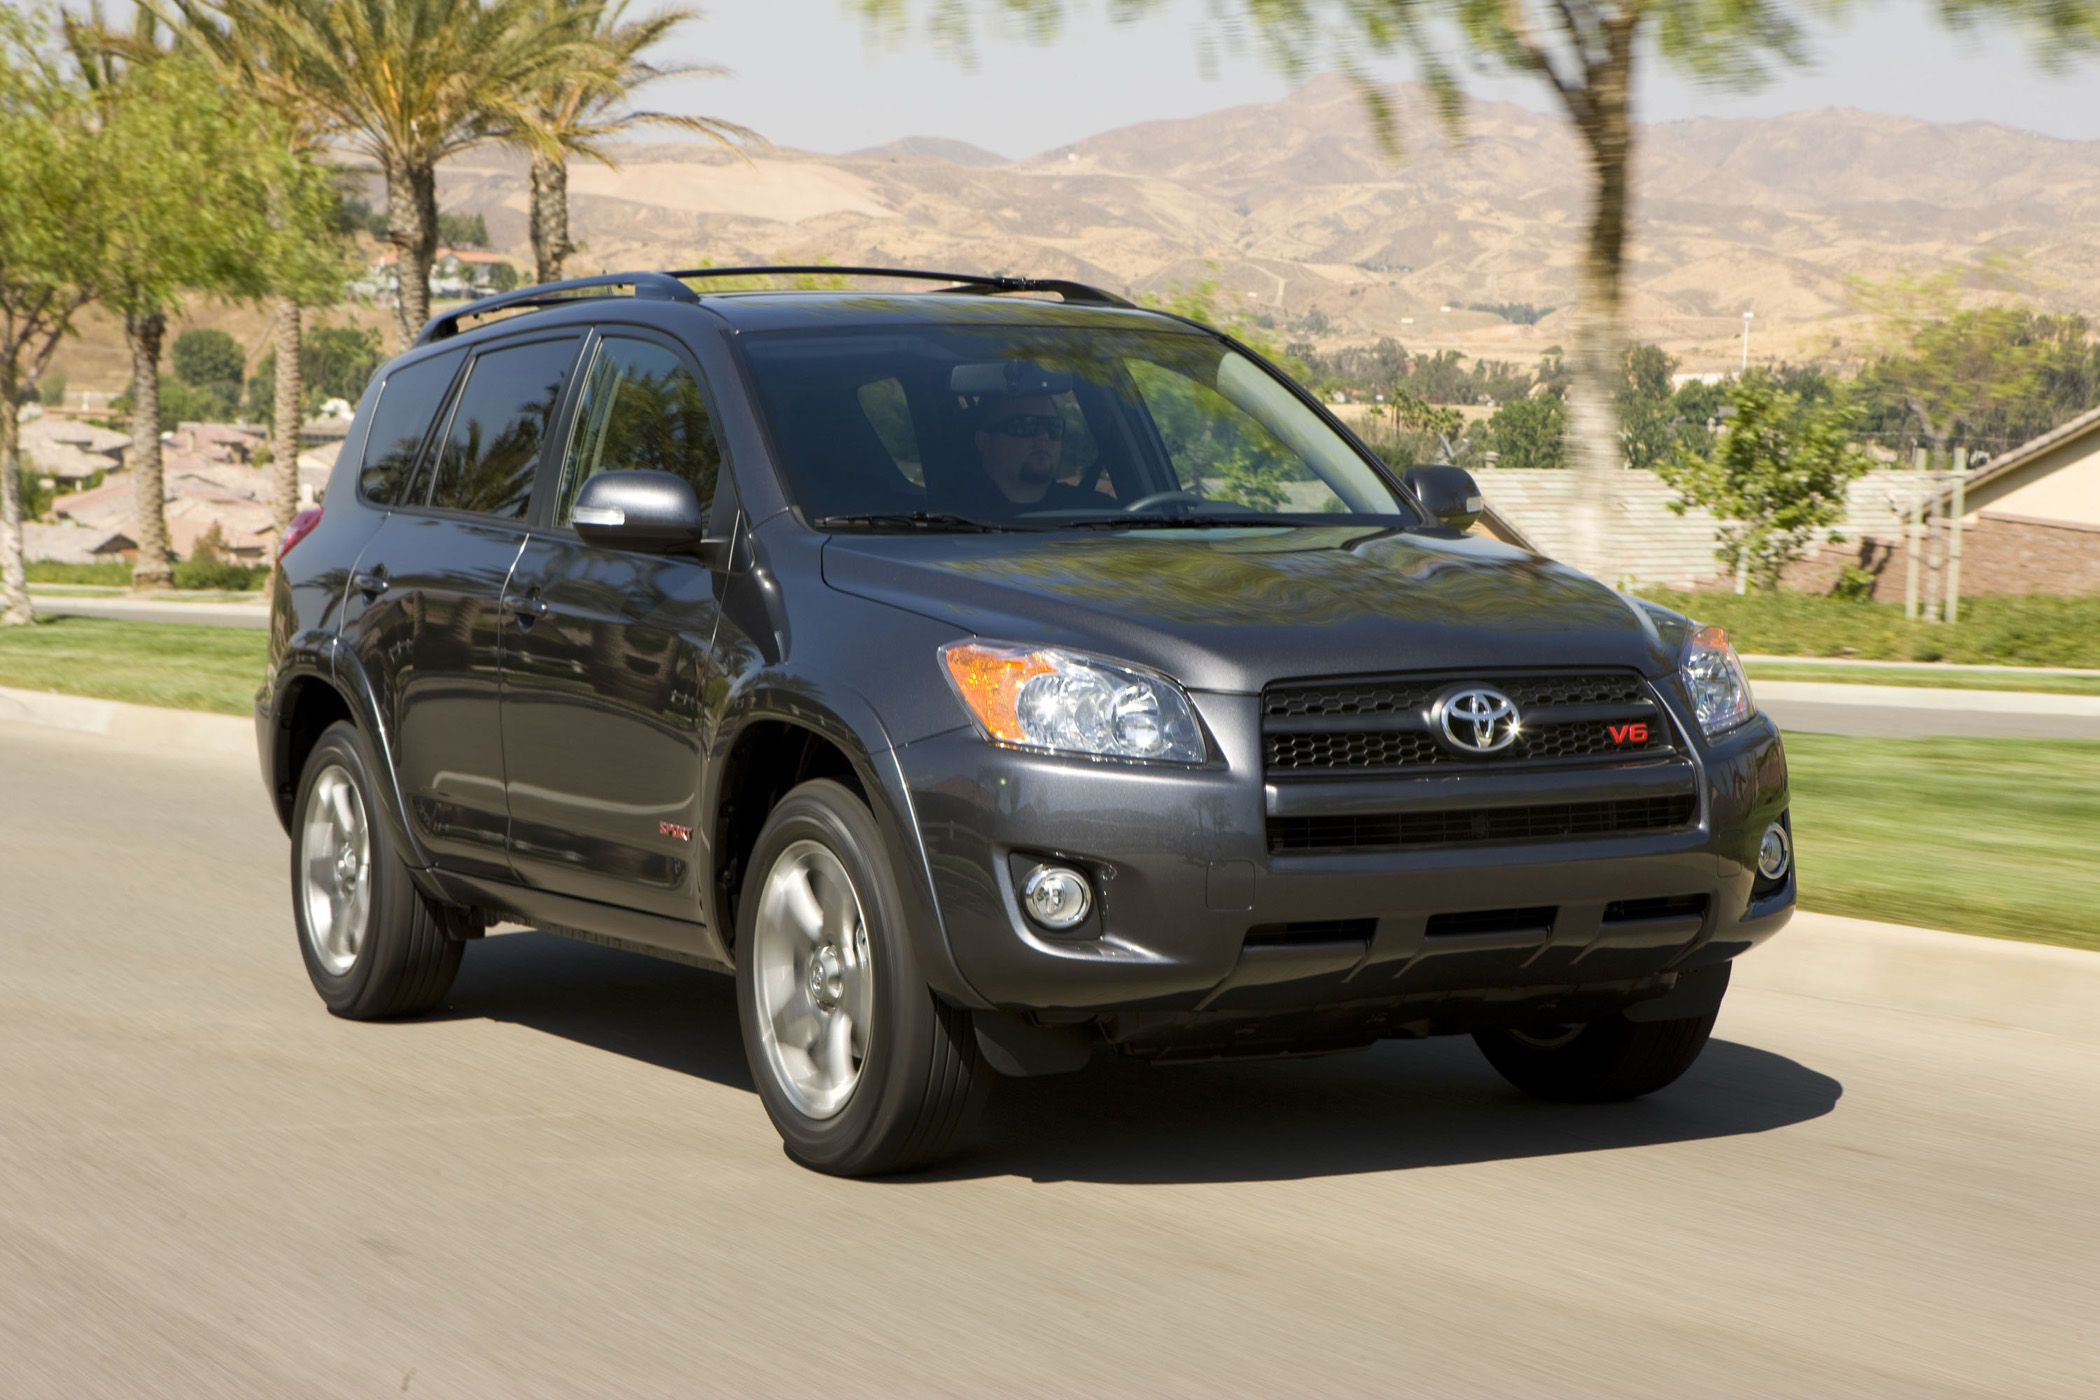 toyota rav4 hits sweet spot for many suv buyers get off the road groovecar. Black Bedroom Furniture Sets. Home Design Ideas